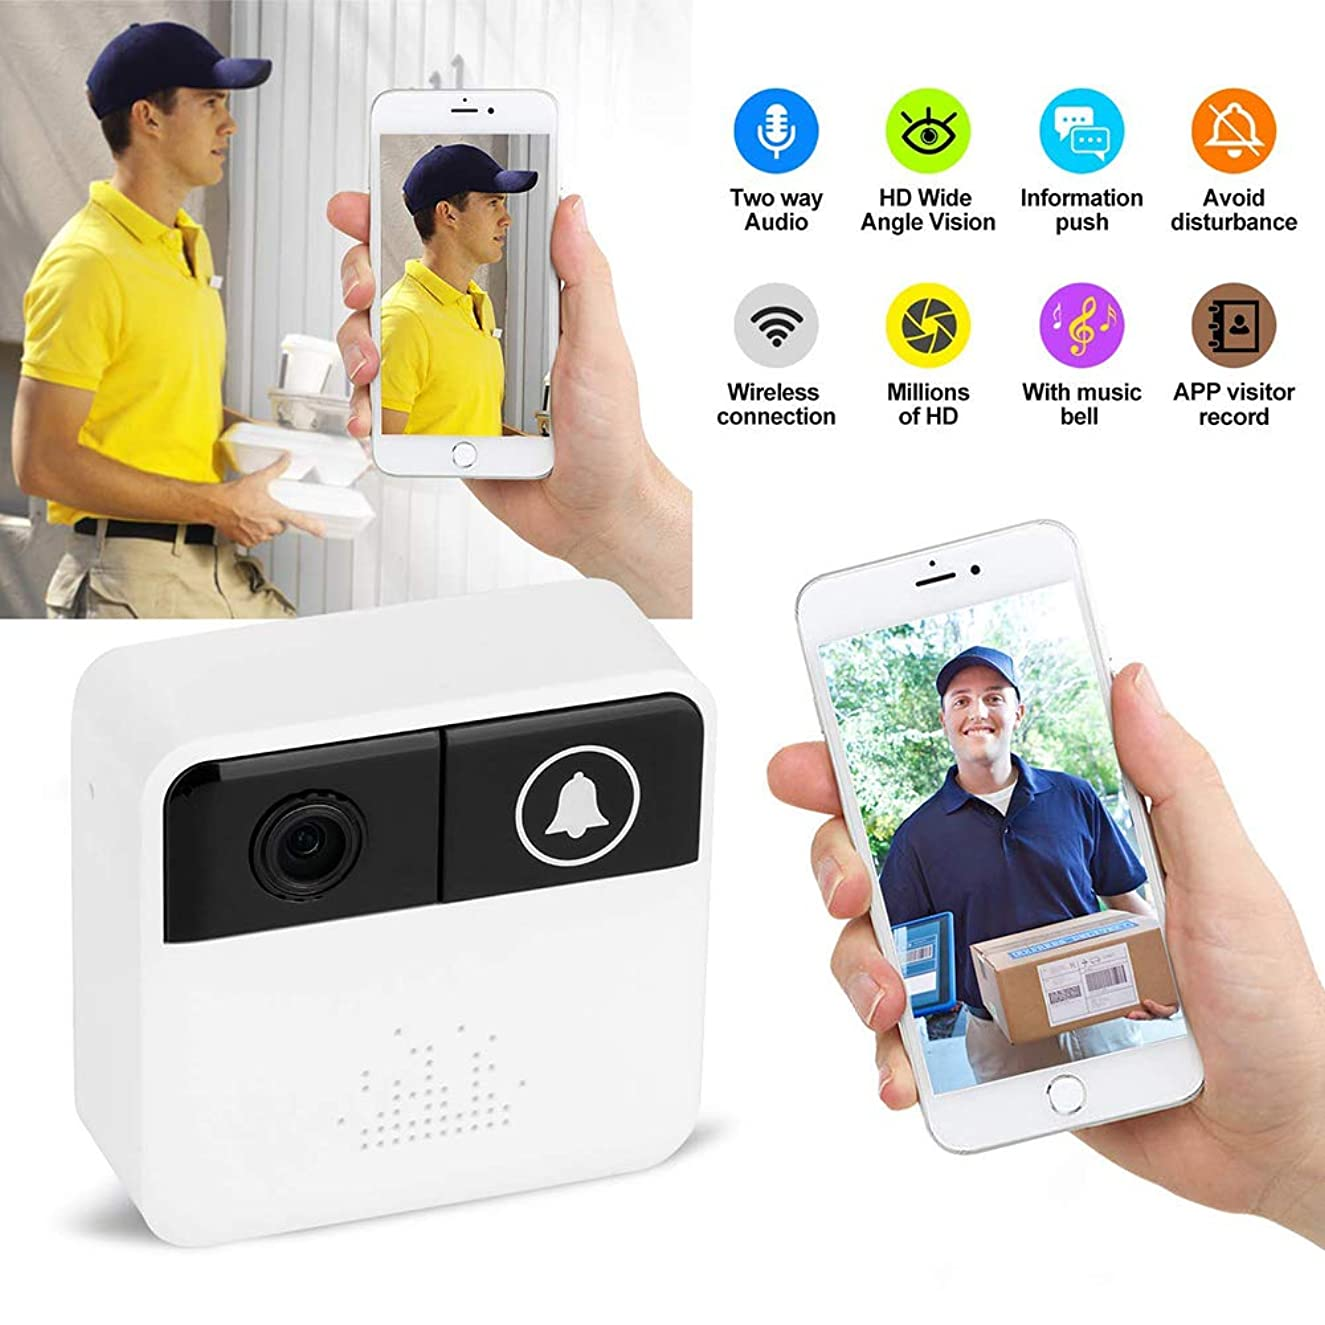 X&LFC Home Security Video Doorbell, Security Monitoring System Real-Time Video and Two-Way Conversation,for iOS and Android